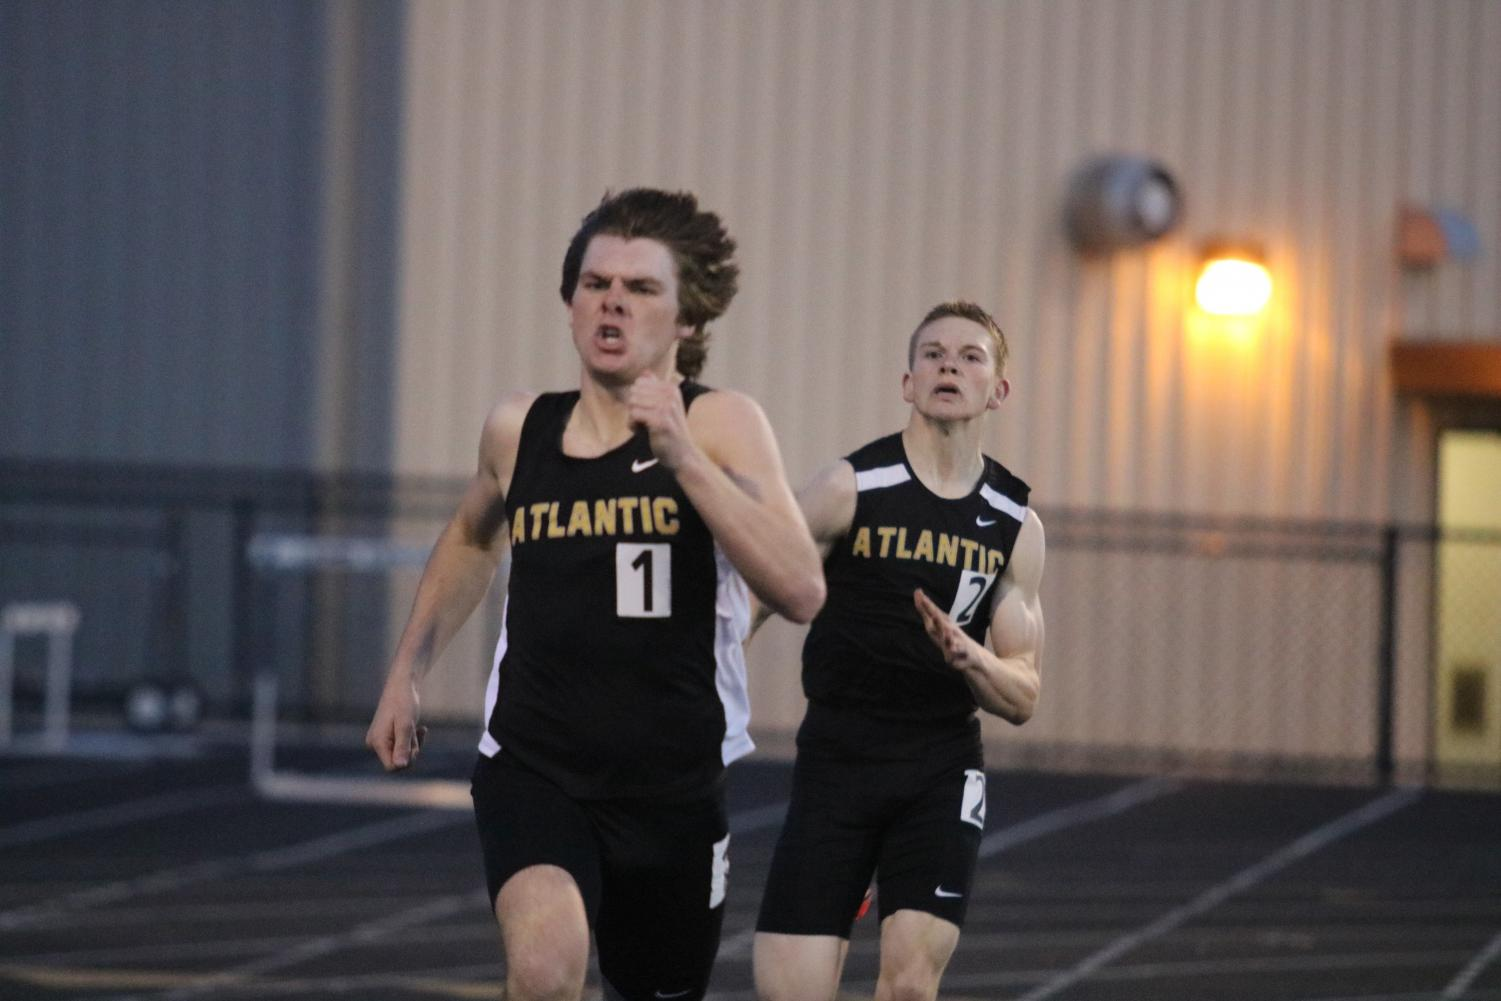 WORKING TOGETHER - Senior Chase Mullinex and Sophomore Craig Alan Becker push each other during their race. Mullinex and Becker have been solid runners for the boys' team.